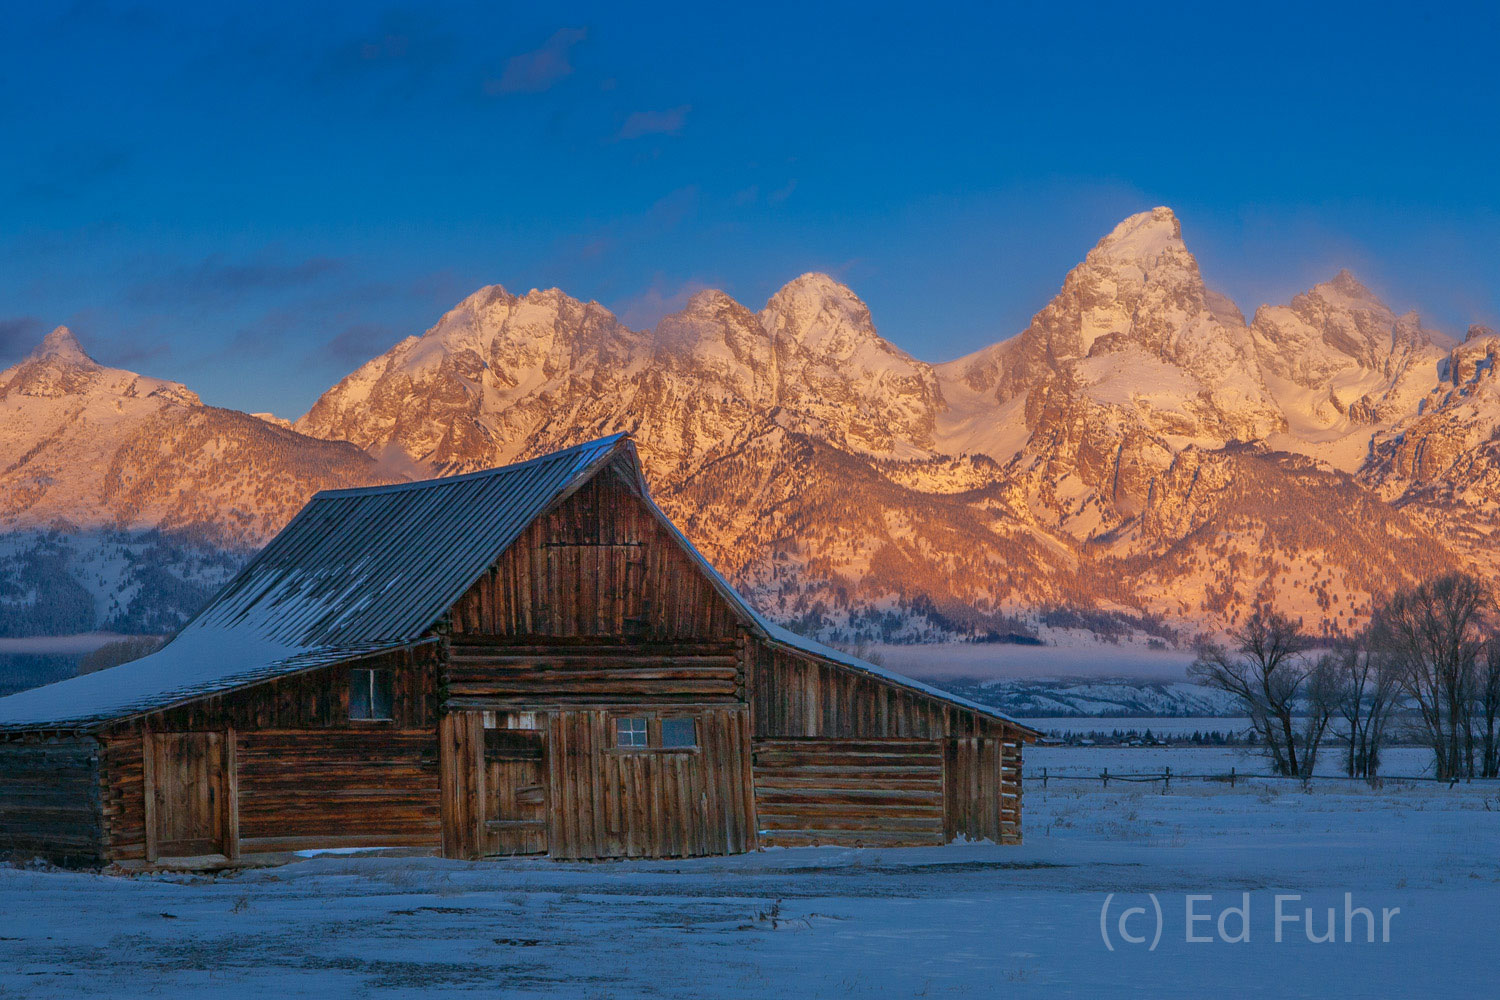 From the shadow of the barns, sunrise breaks and the Tetons glow in the light of a rare clear winter day.